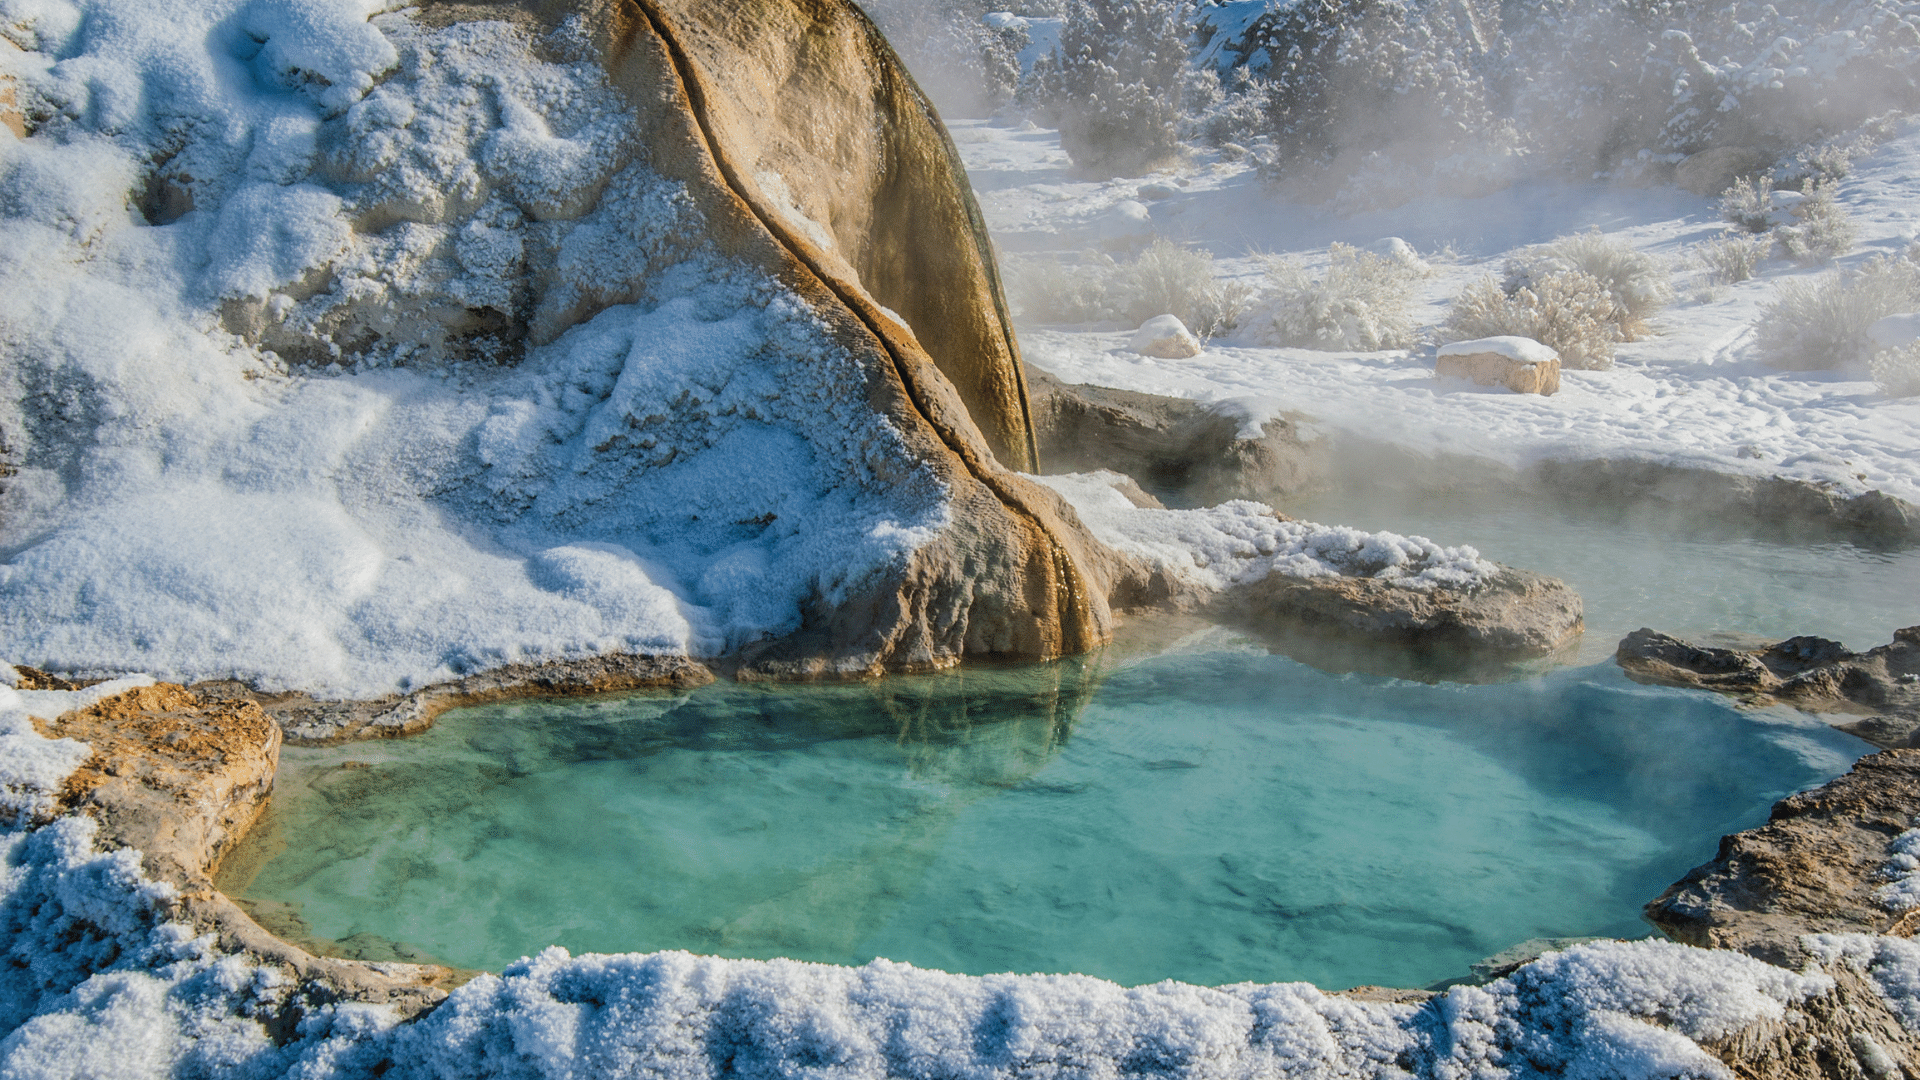 Small hot spring in the eastern Sierra Nevada Mountains near Bridgeport, California.